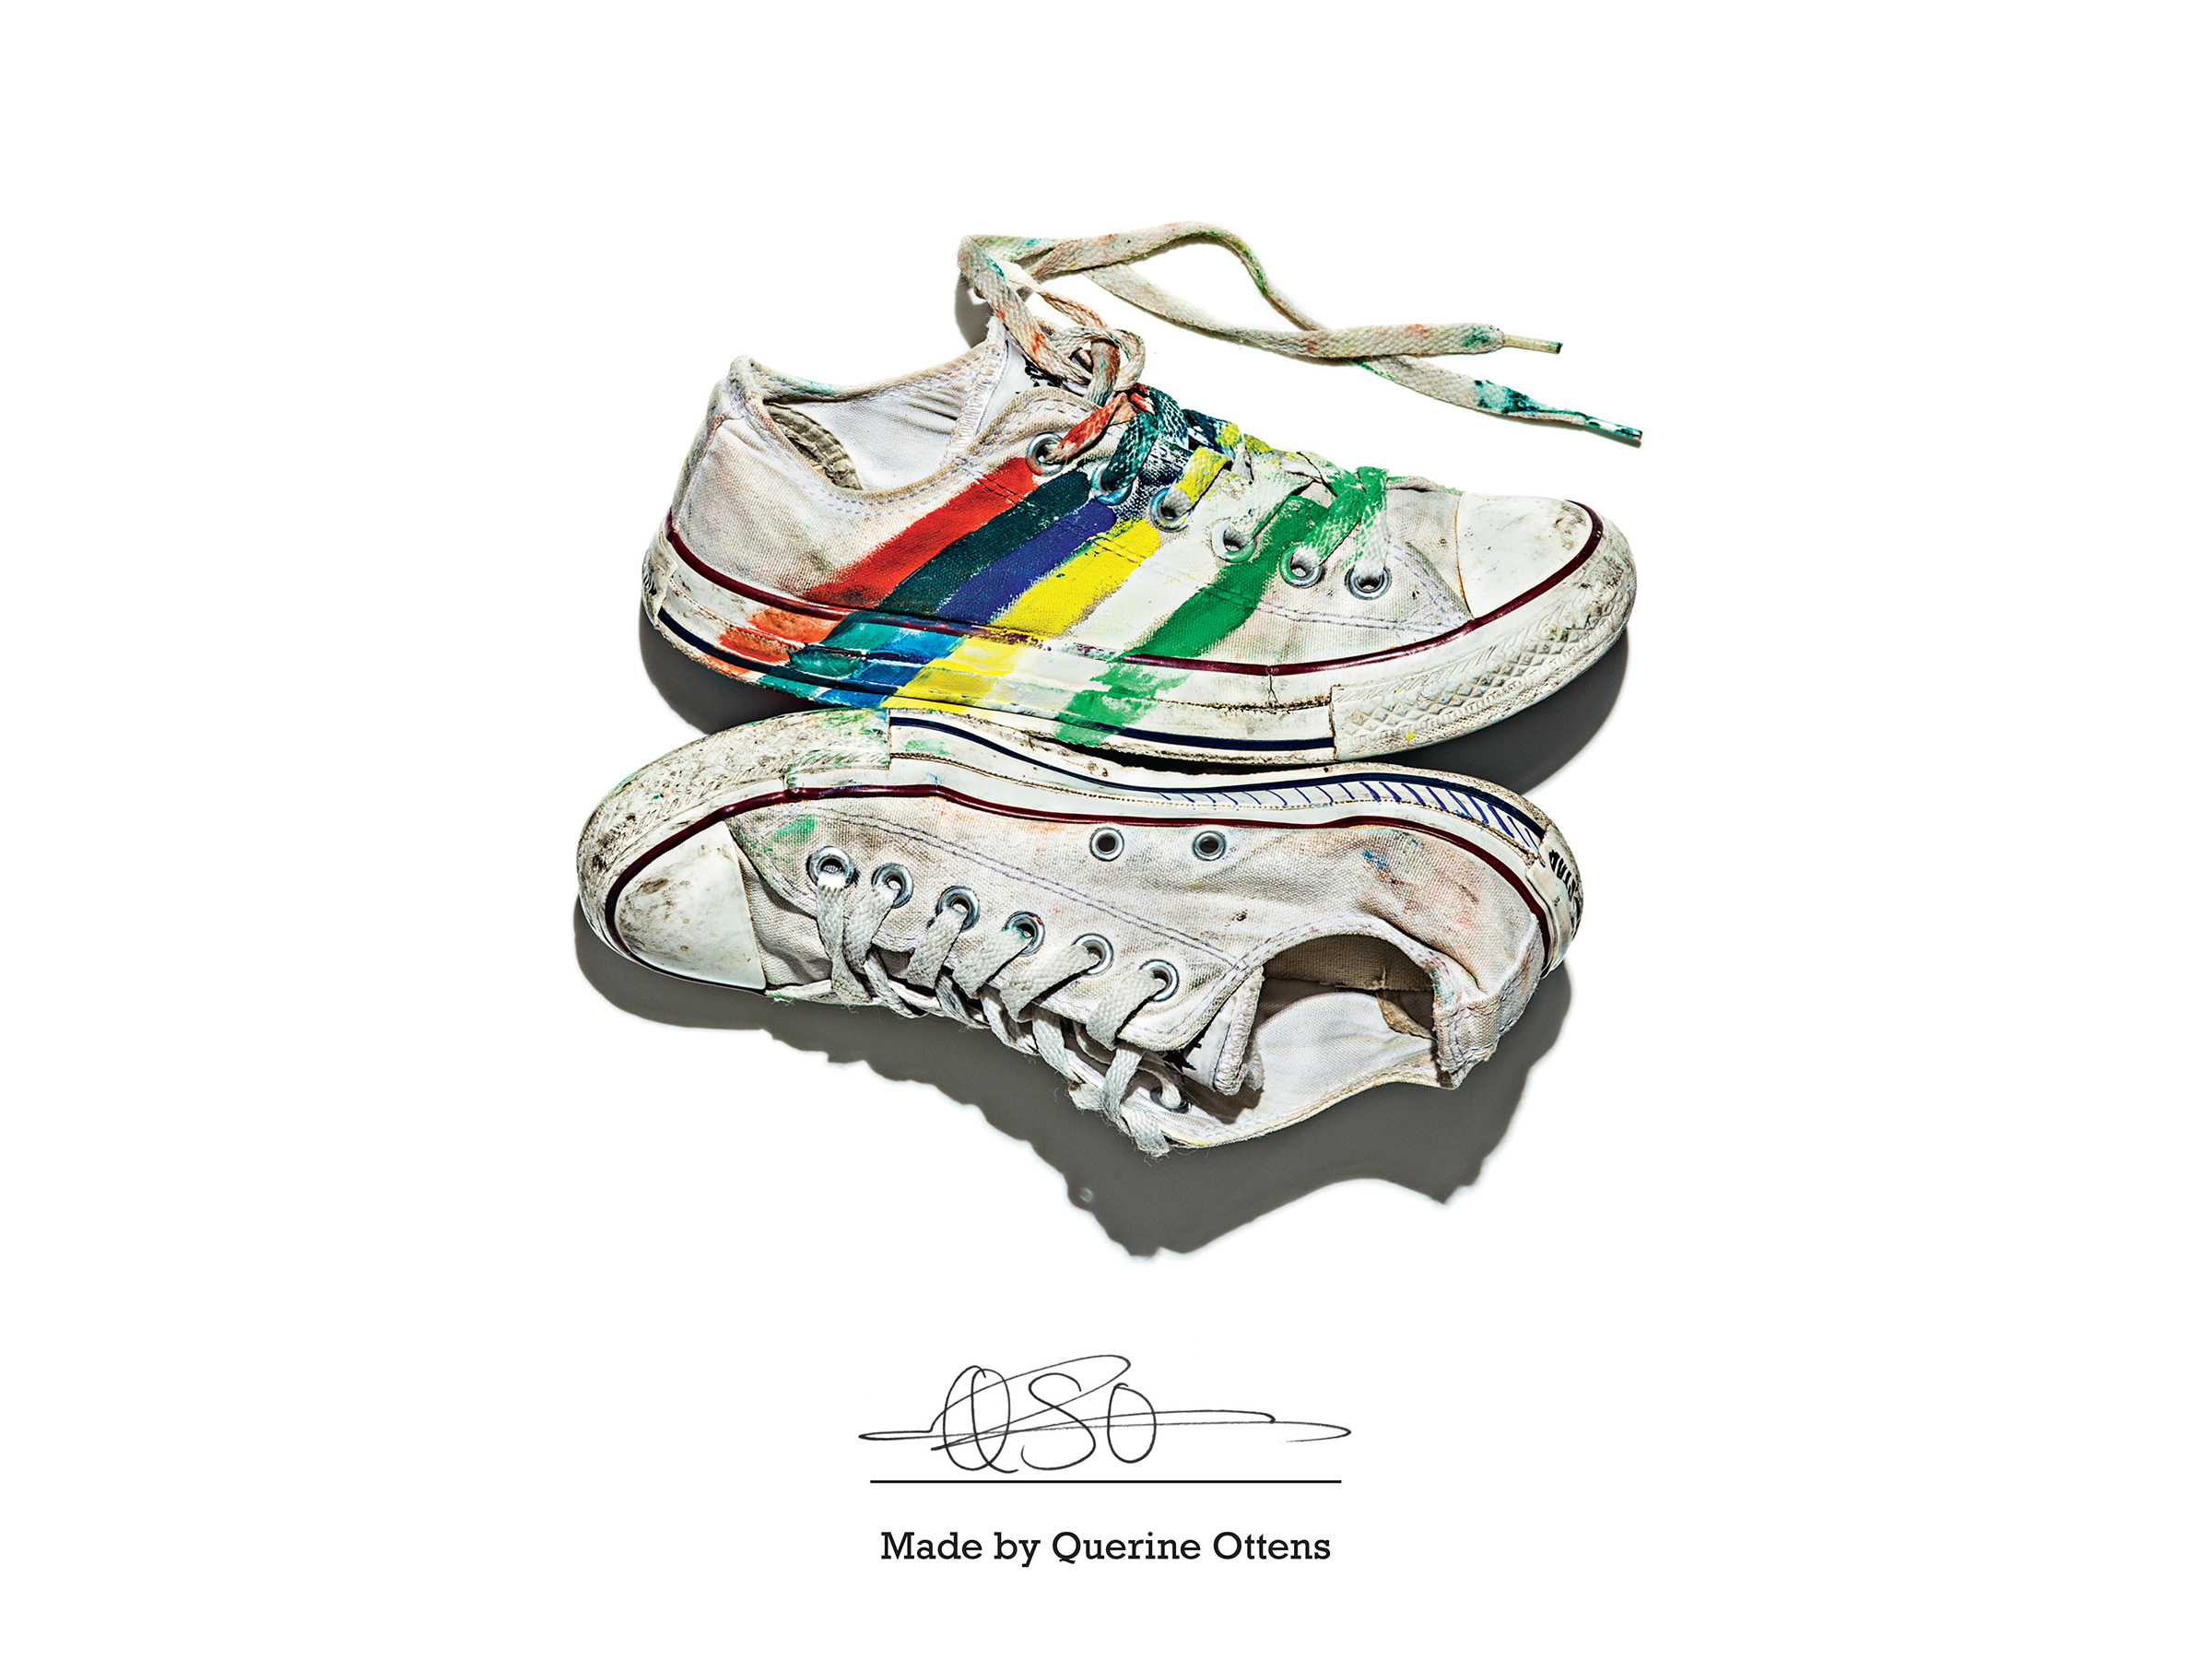 RGB.vn_chien-dich-converse-made-by-you-12